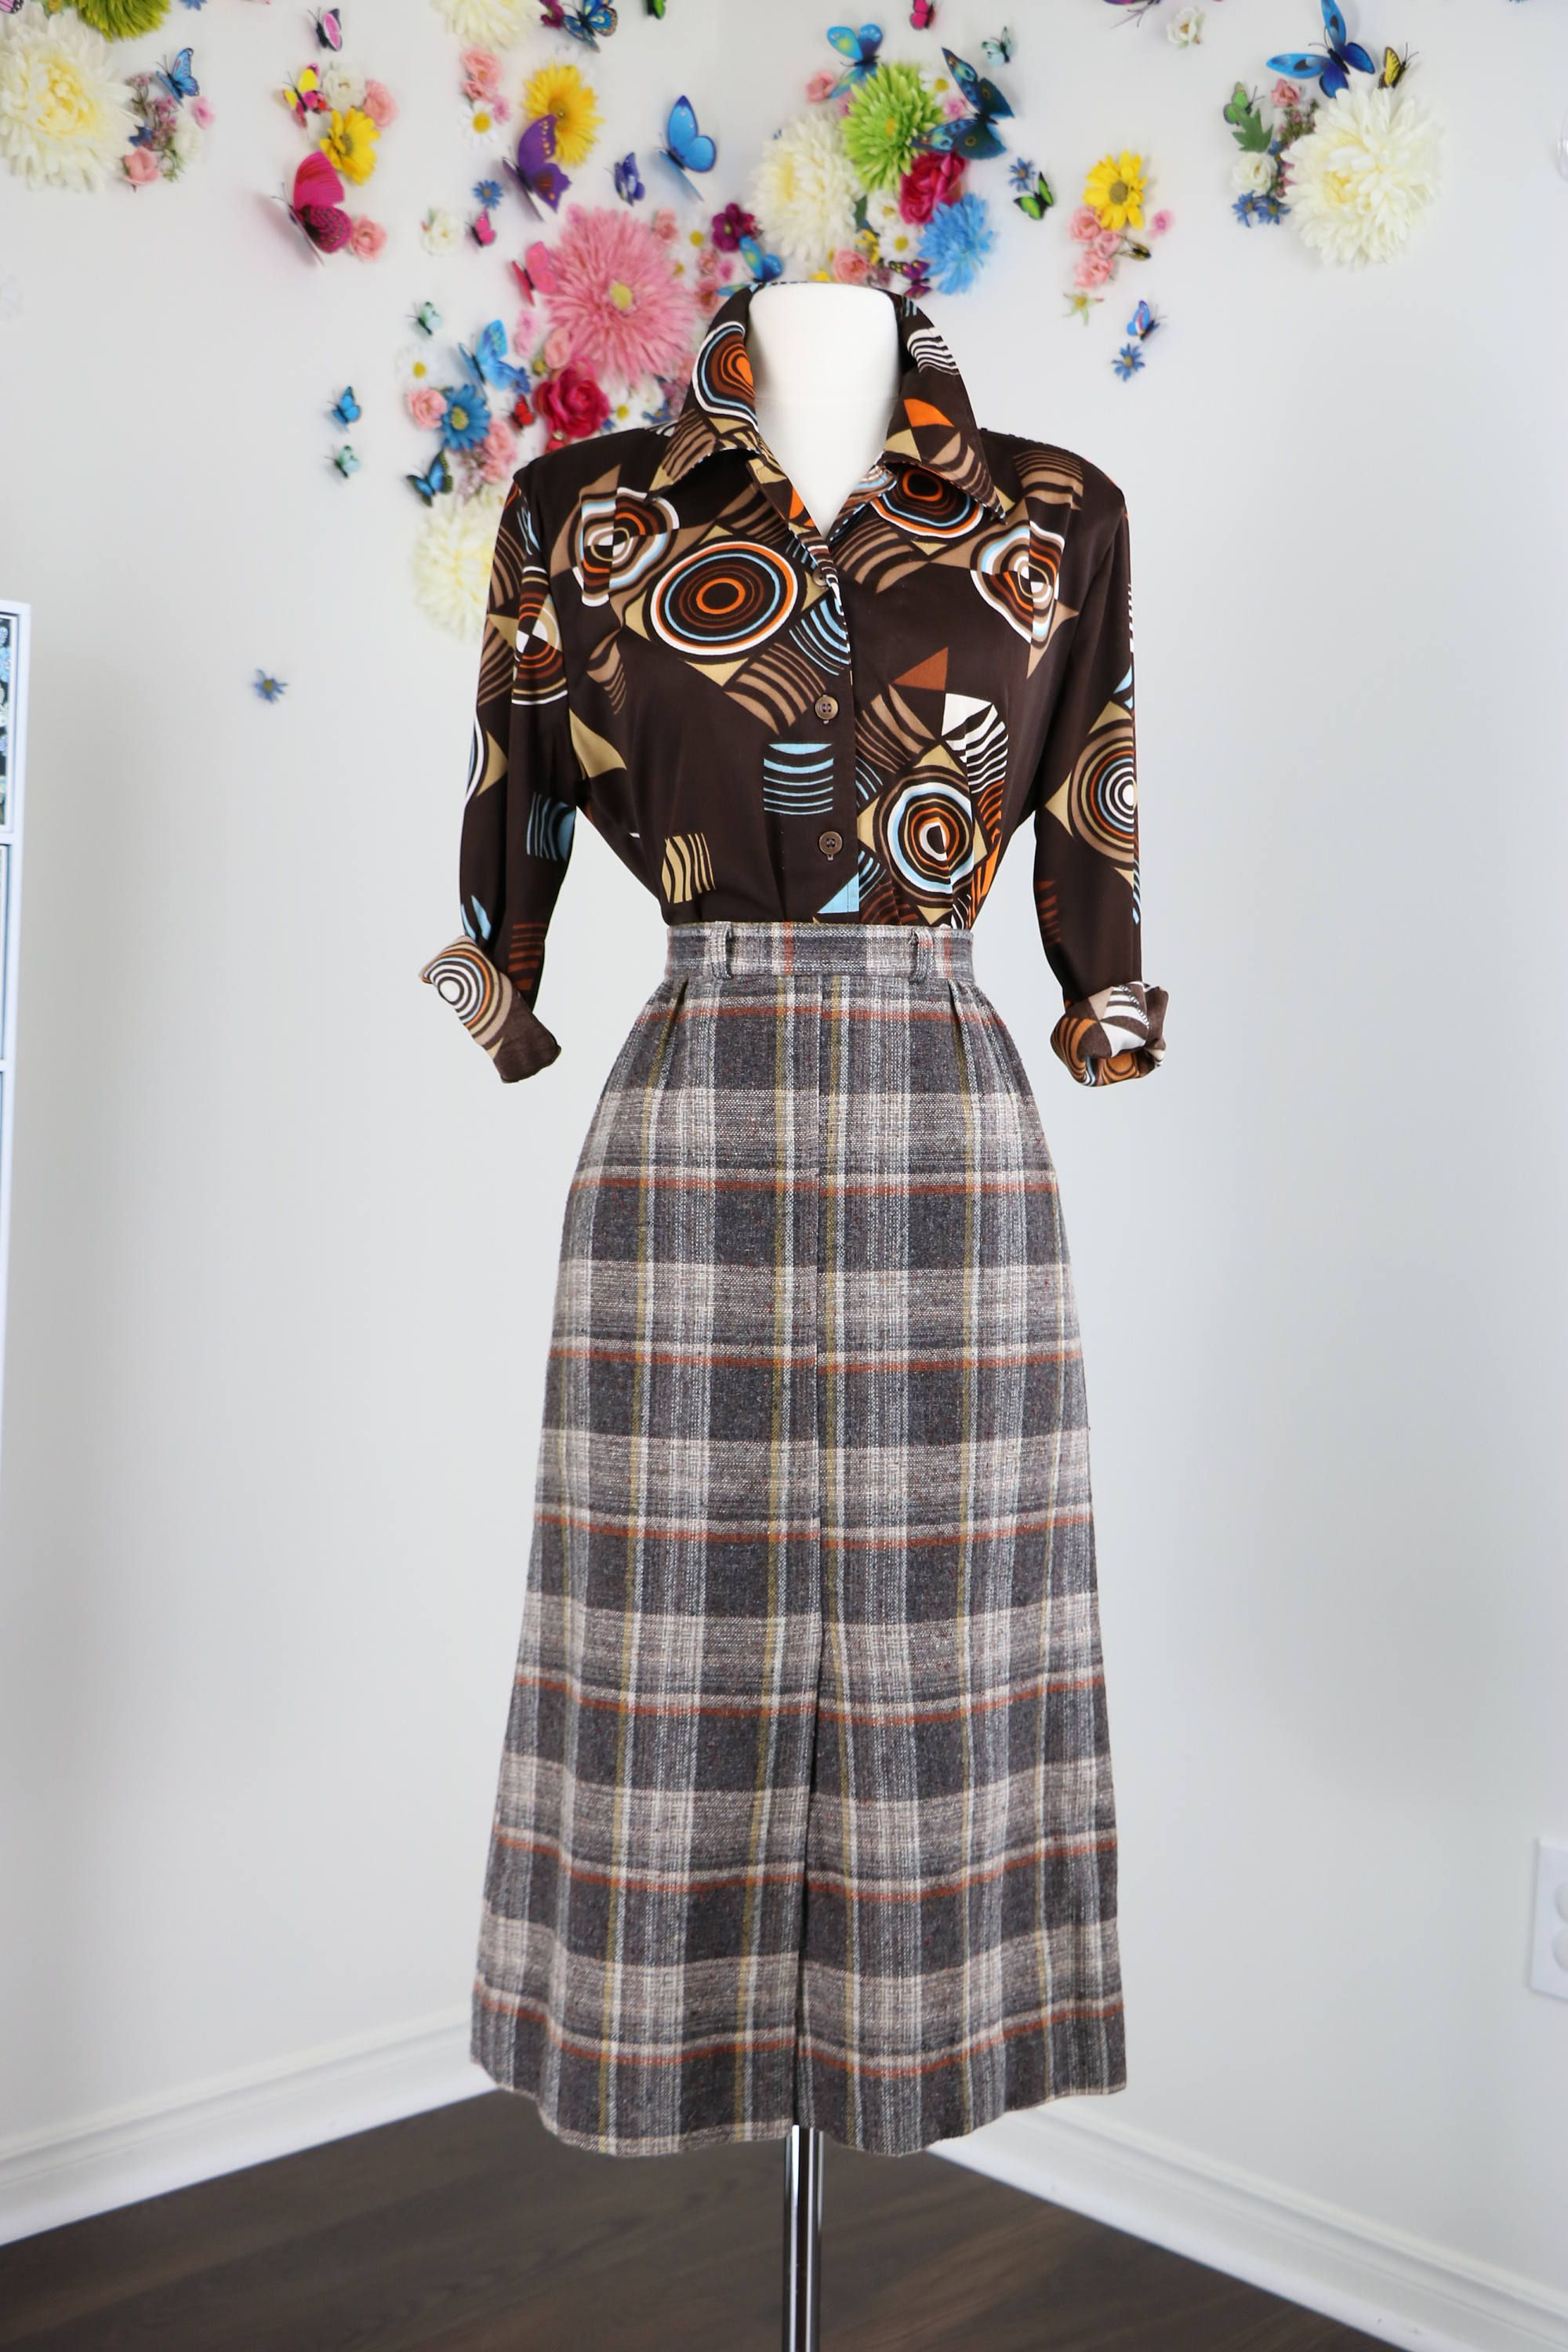 fa477ff7d 1950s Vintage Plaid Patterned Wool A-line Midi Skirt Front Slit Brown Grey  White Gold Size Extra Small Or Small 26